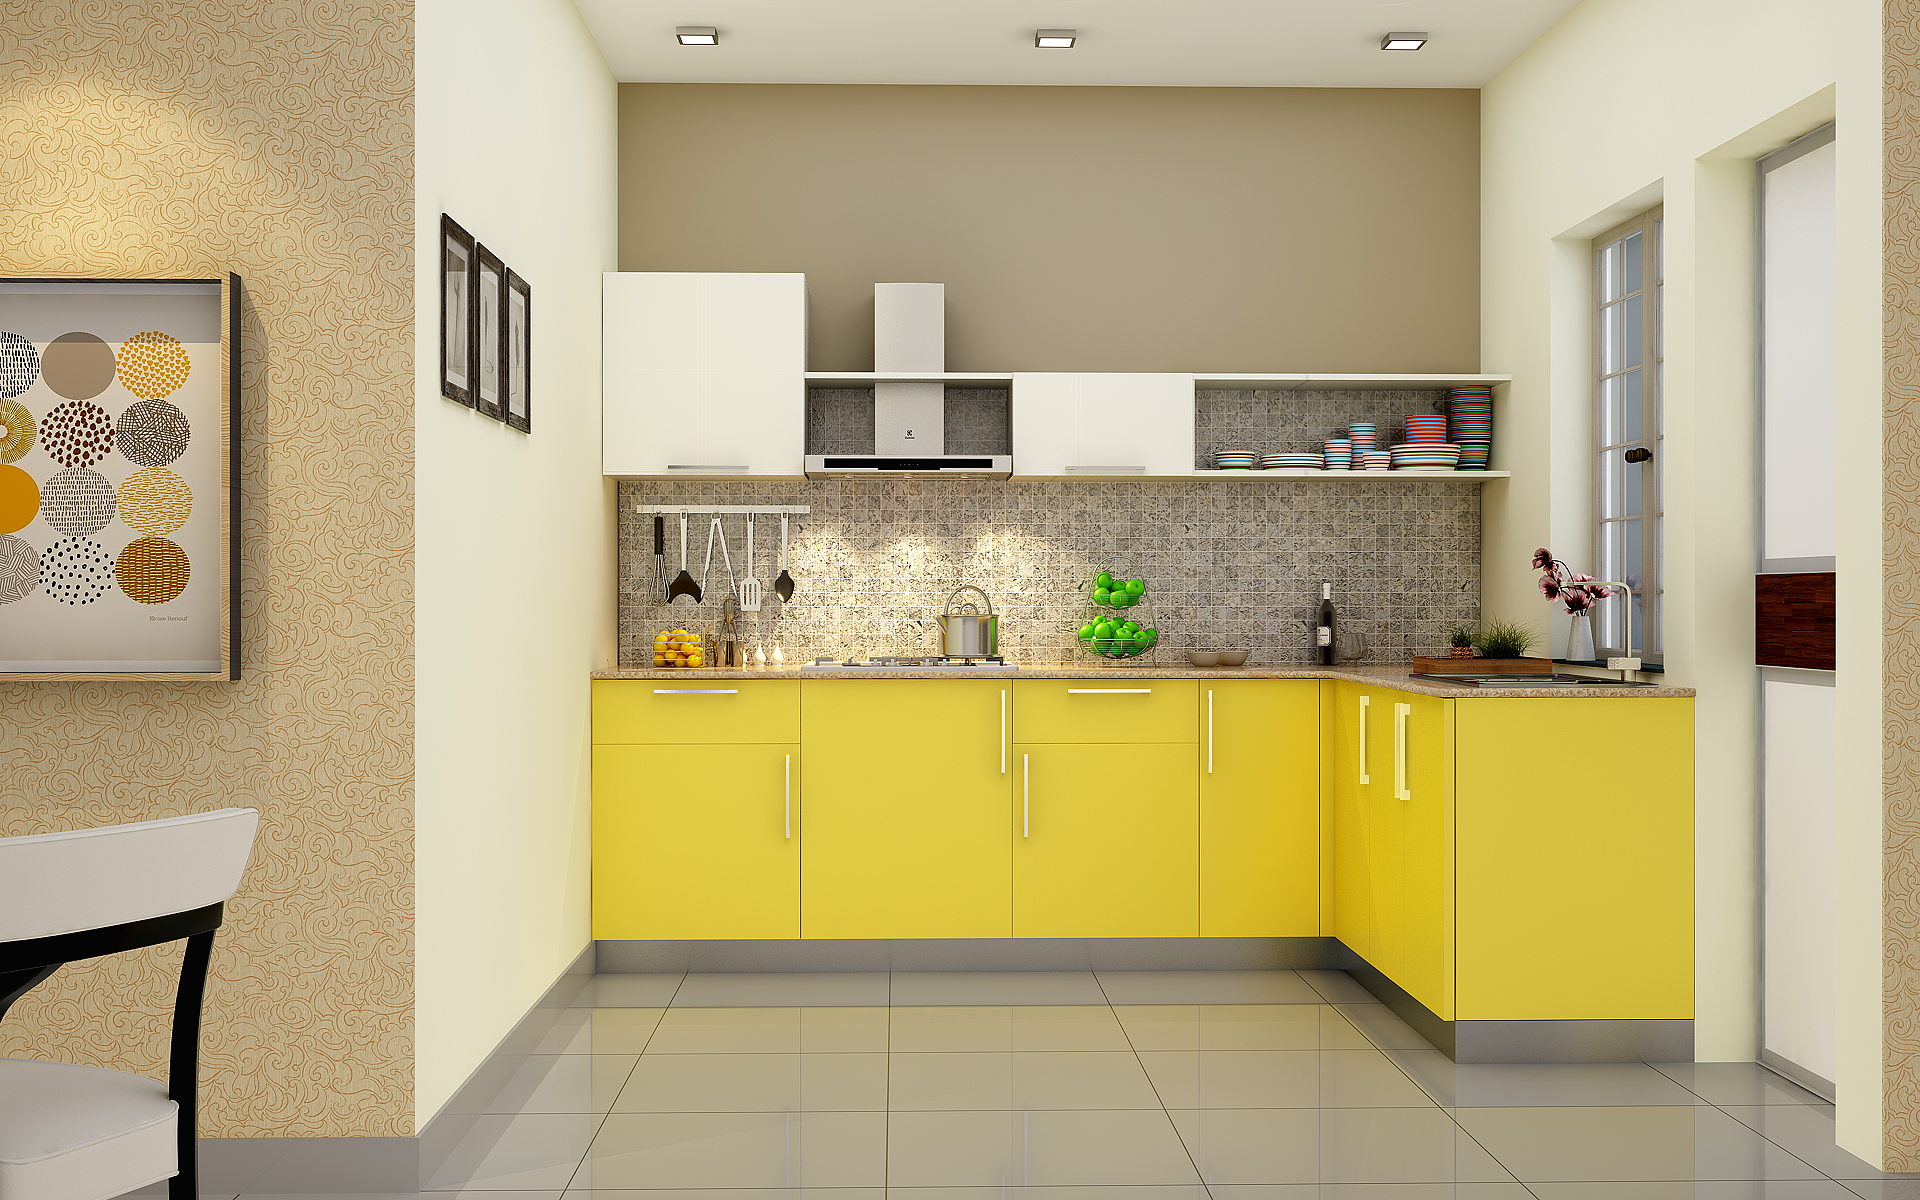 Heron Elegant L Shaped KitchenBuy Modular  Latest  Budget Kitchens online India   HomeLane com. Modular Kitchen Designs U Shaped. Home Design Ideas